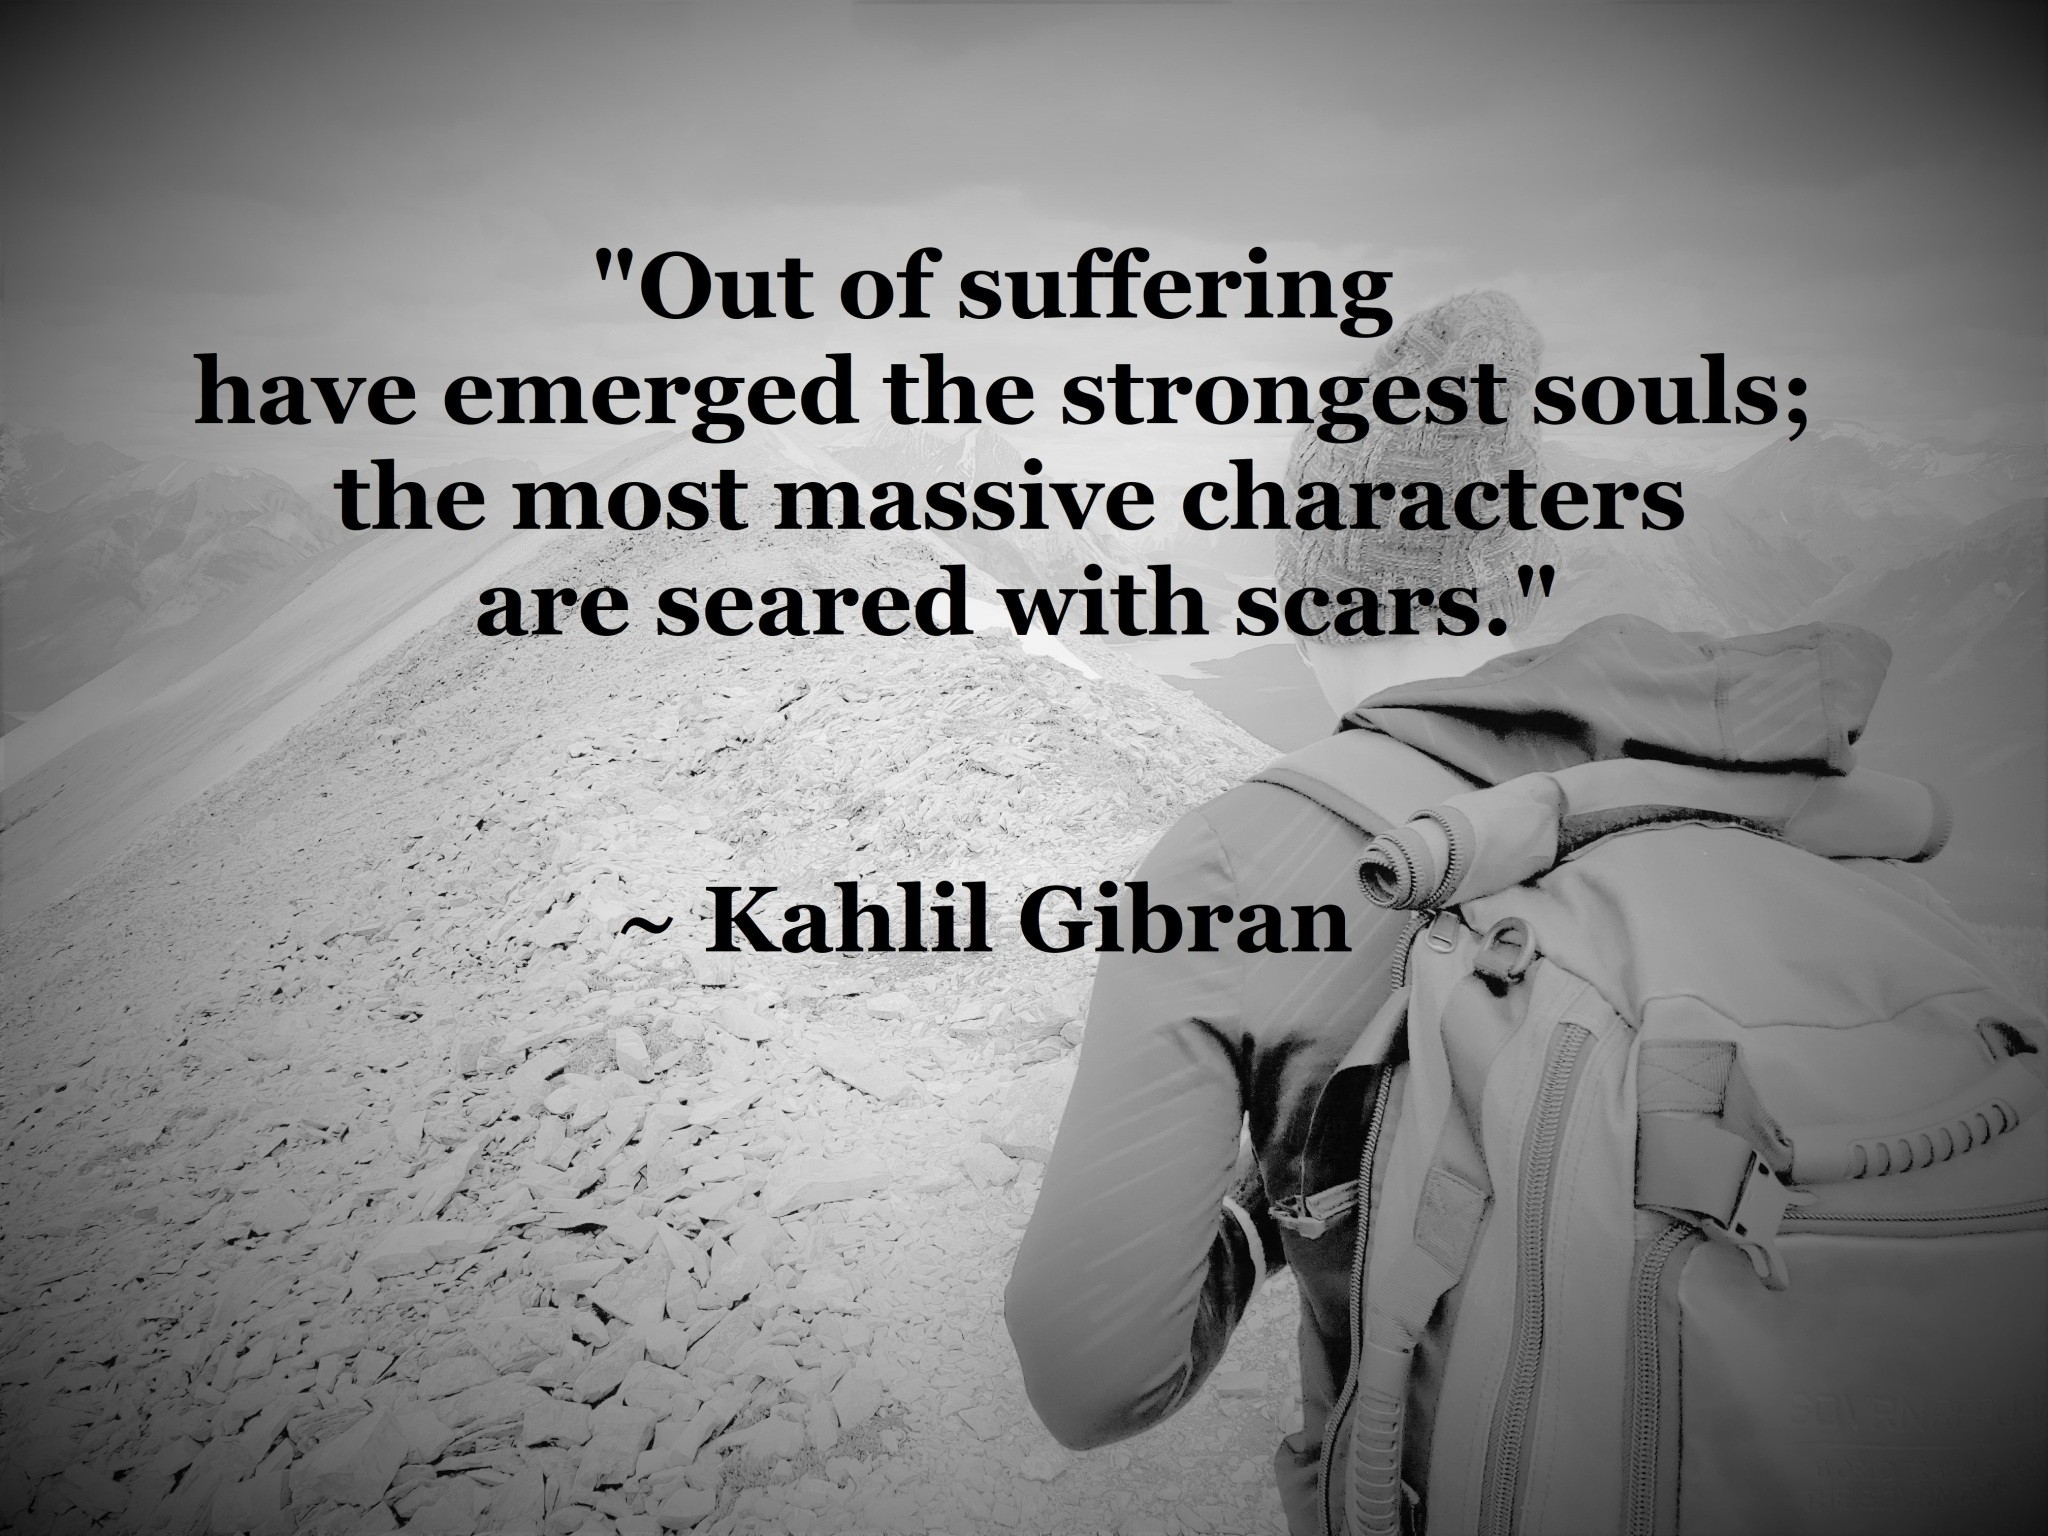 Kahlil Gibran - out of suffering have emerged the strongest souls